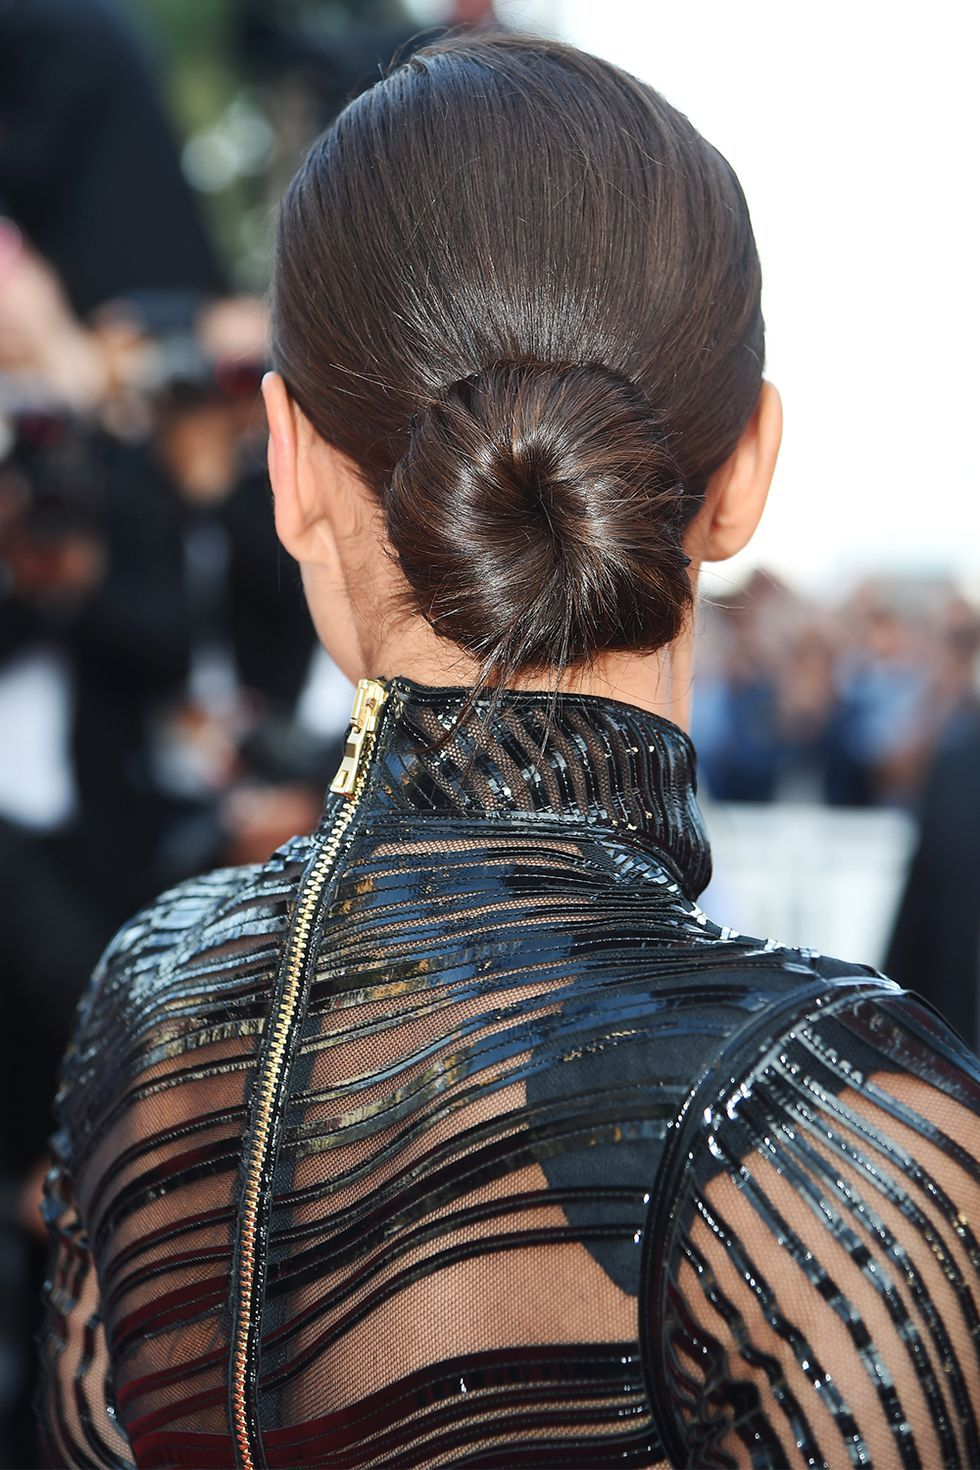 Ger Chignon Hairstyles